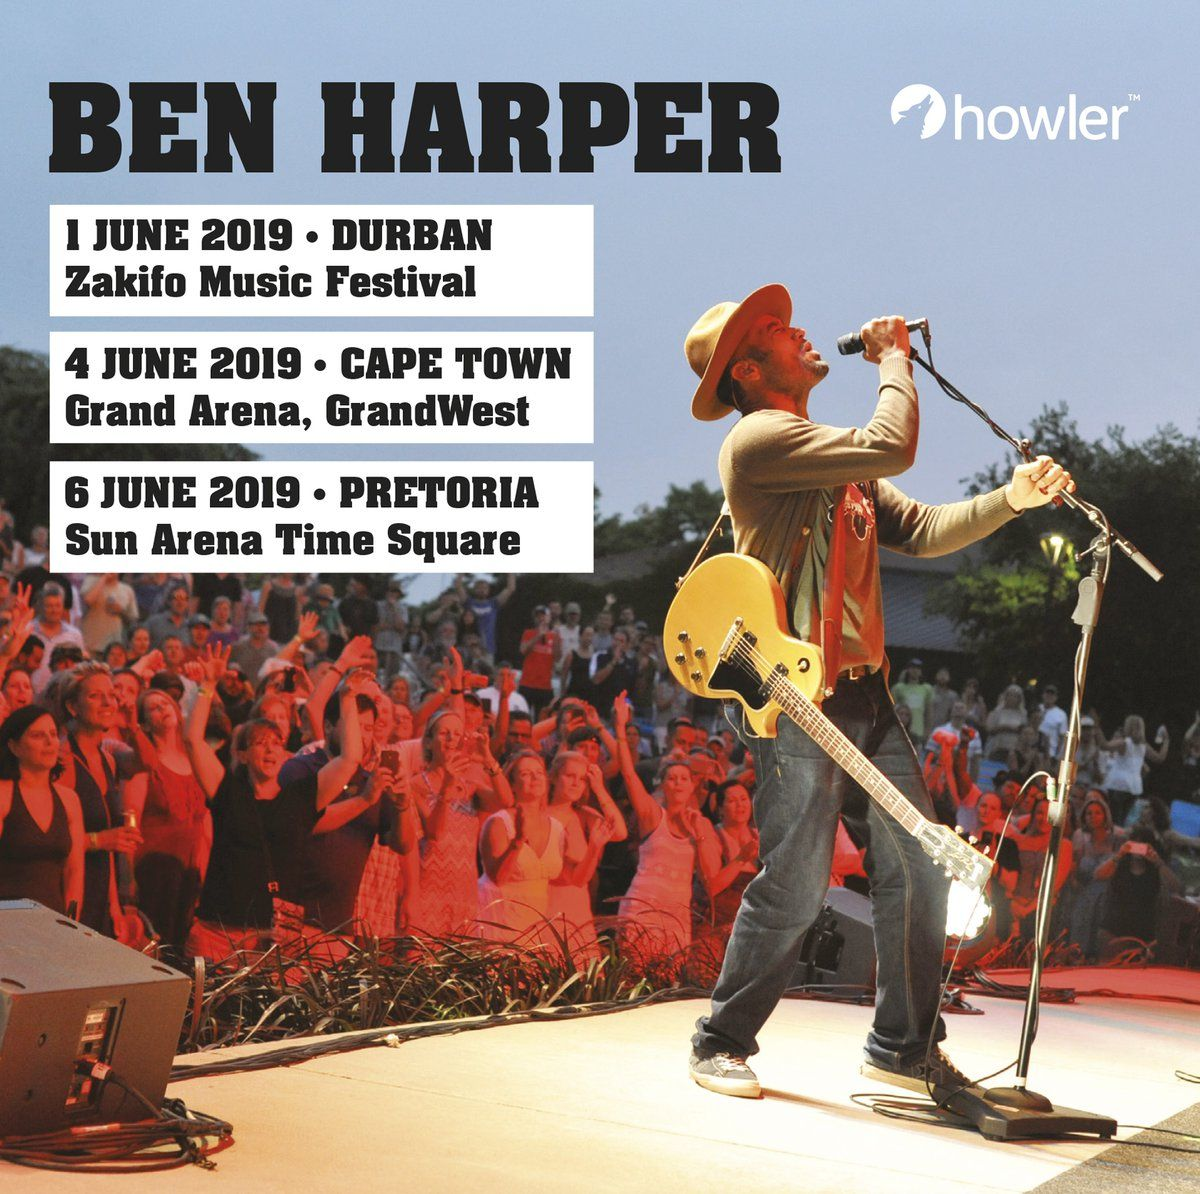 Ben Harper To Tour South Africa In June photo